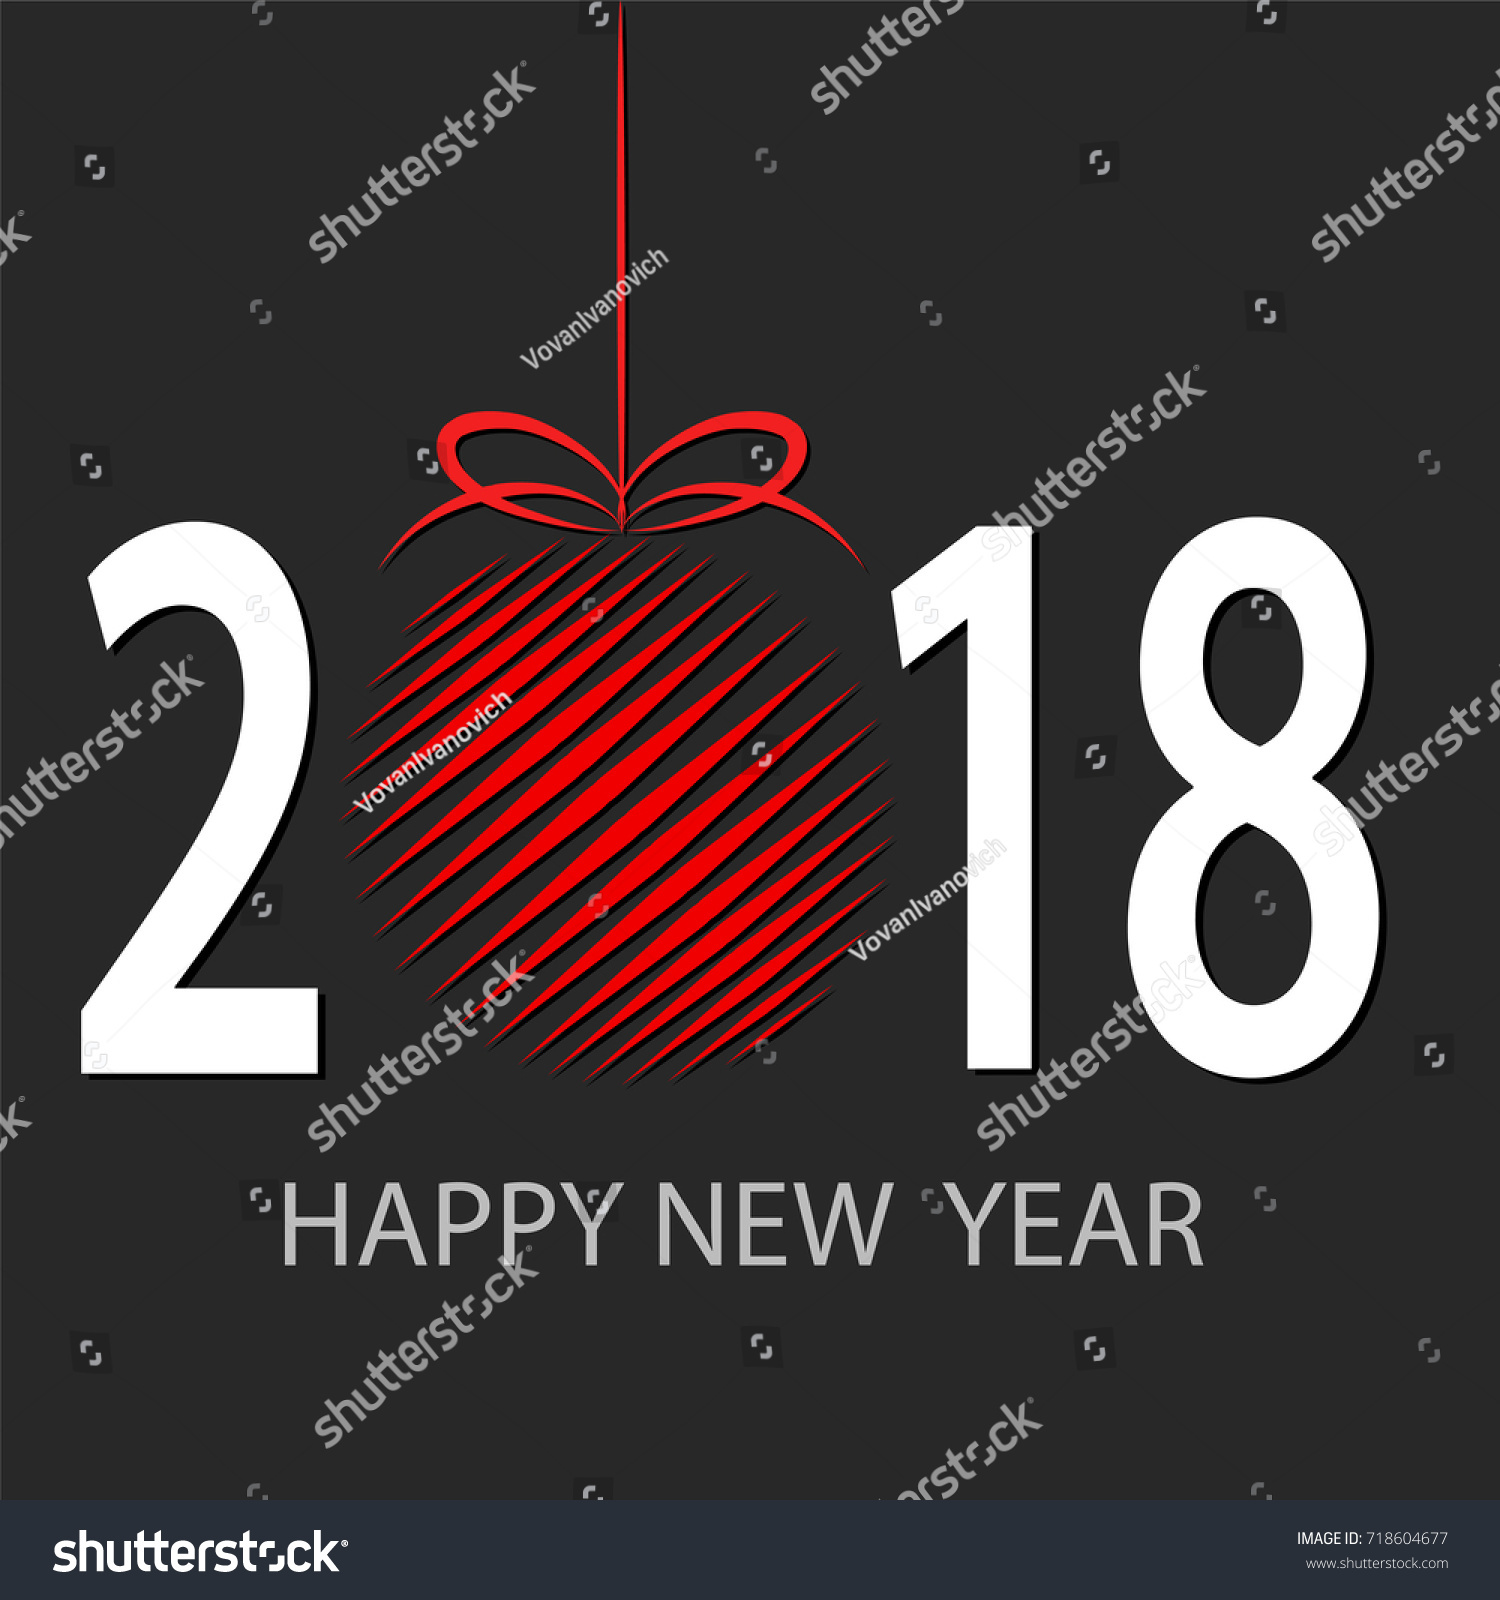 happy new 2018 year greeting card with red decor ball stock vector illustration